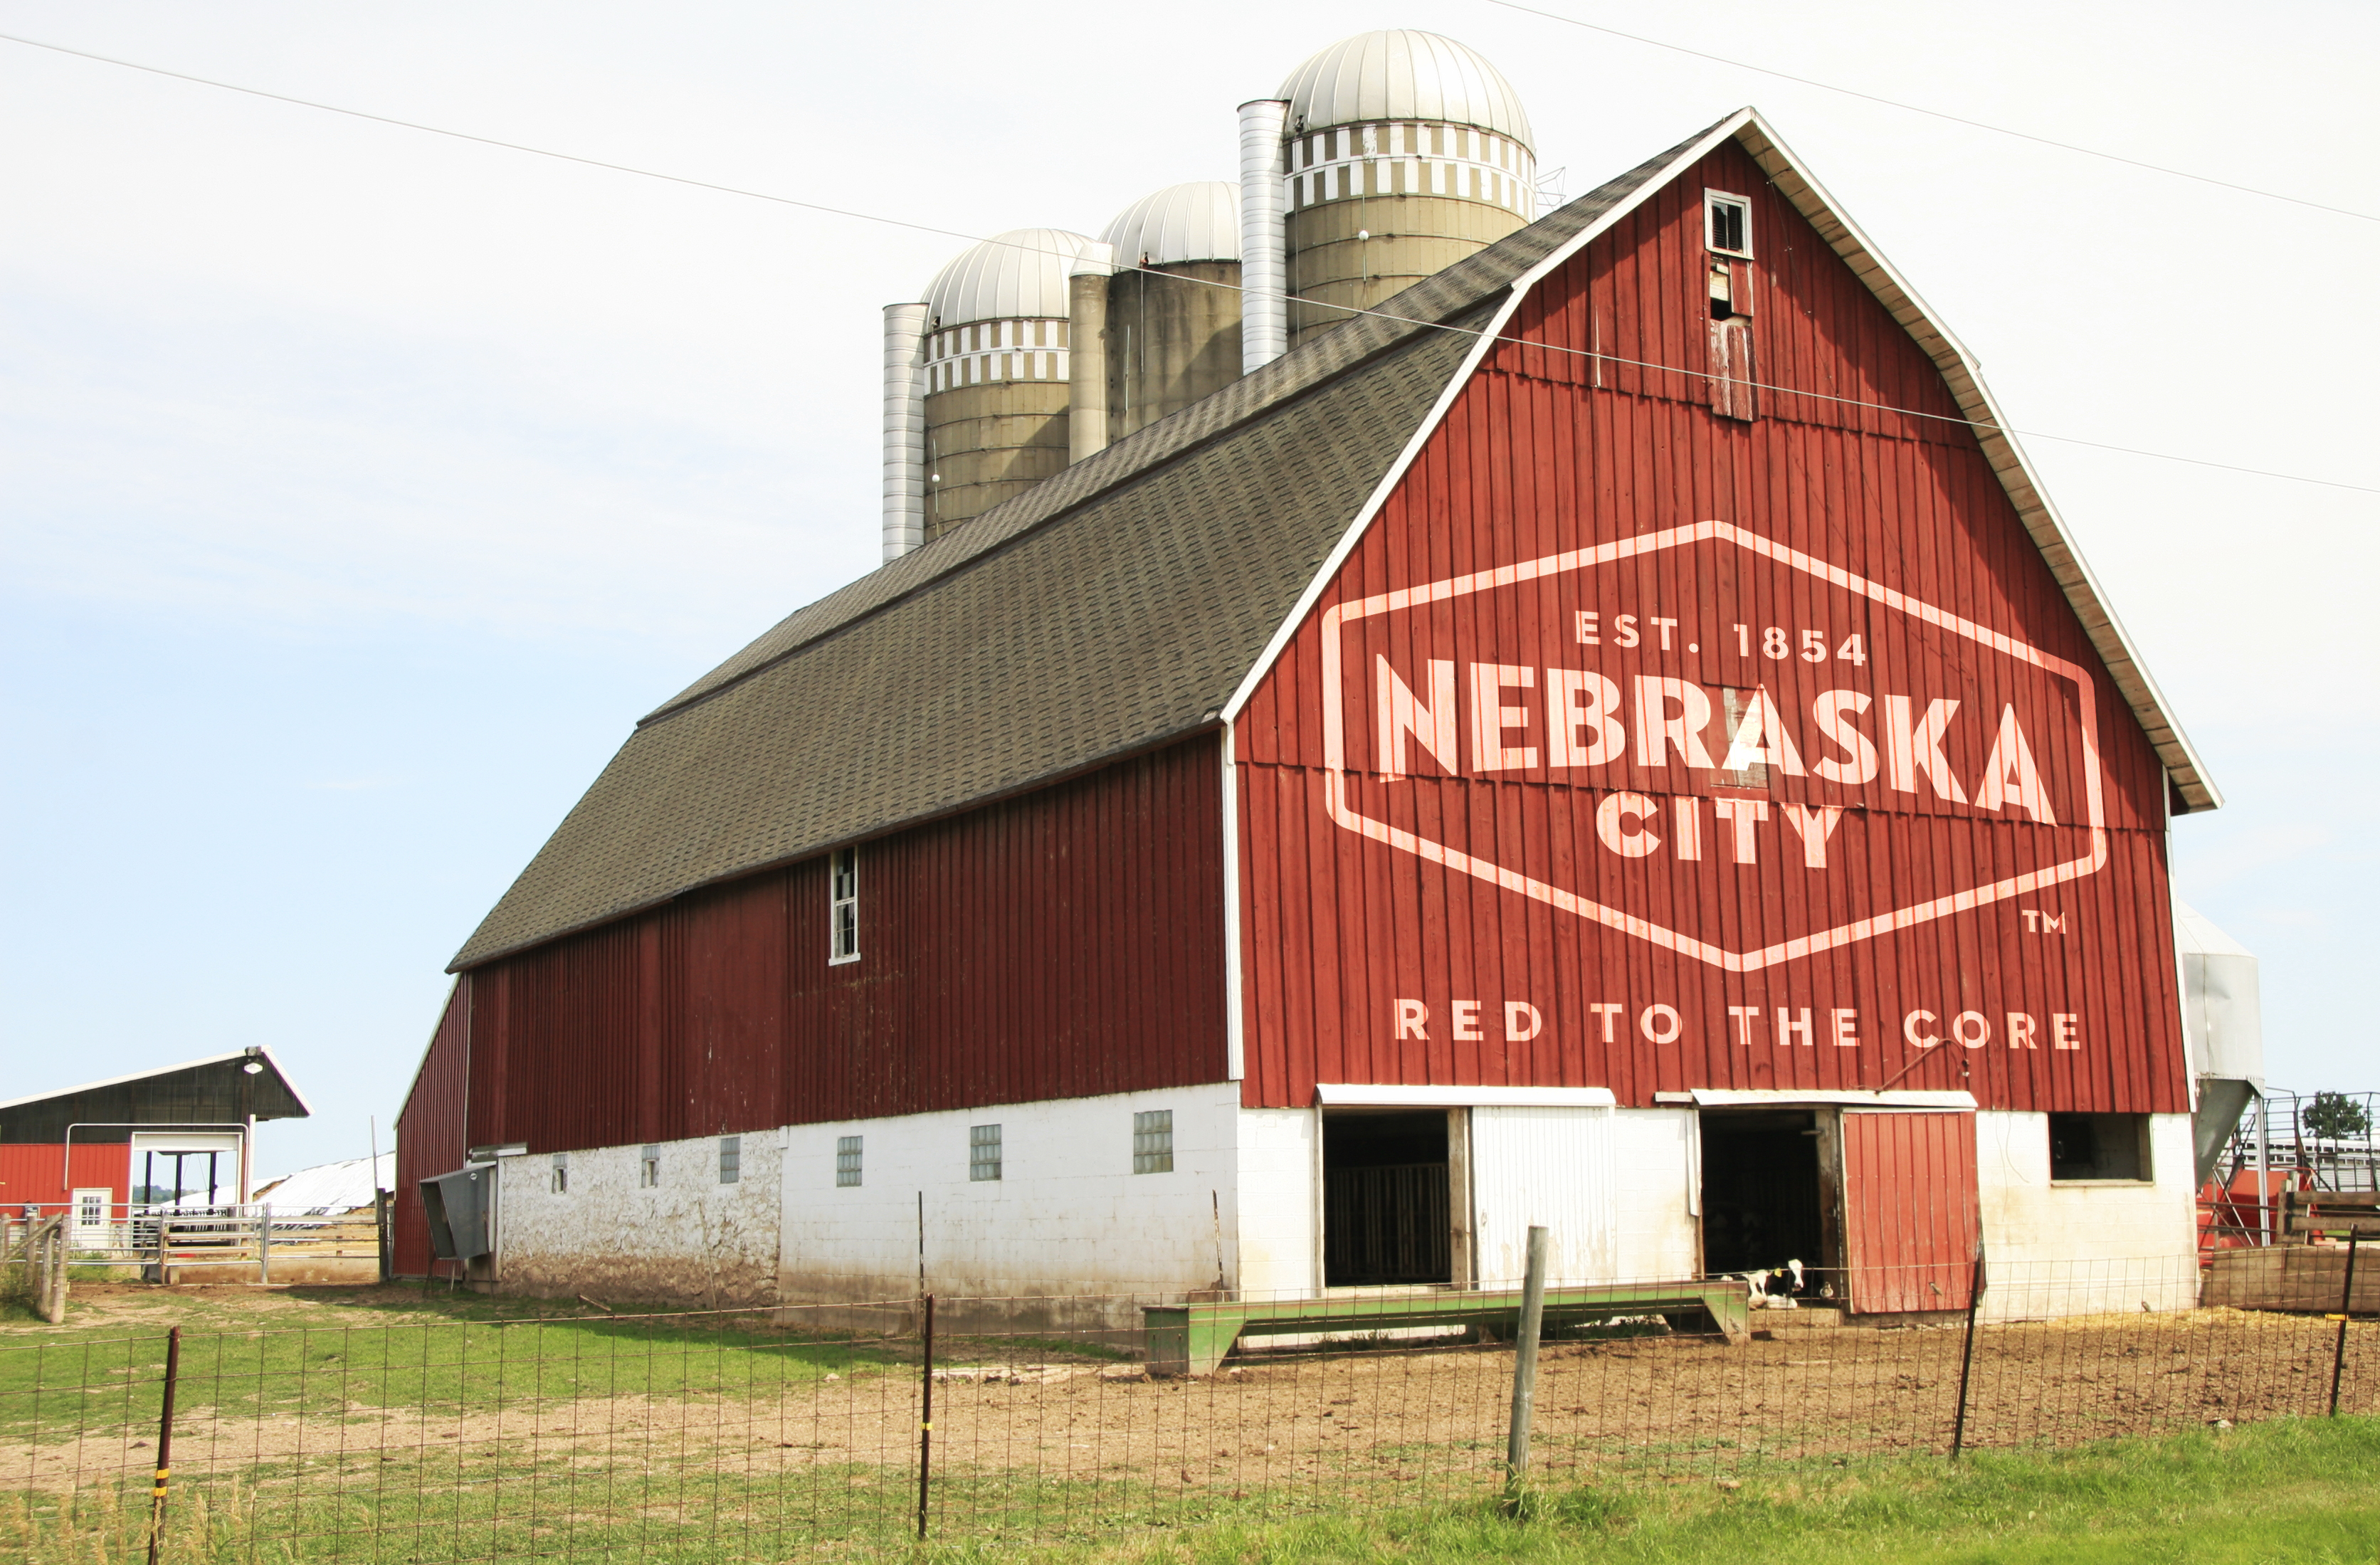 Nebraska City logo on barn